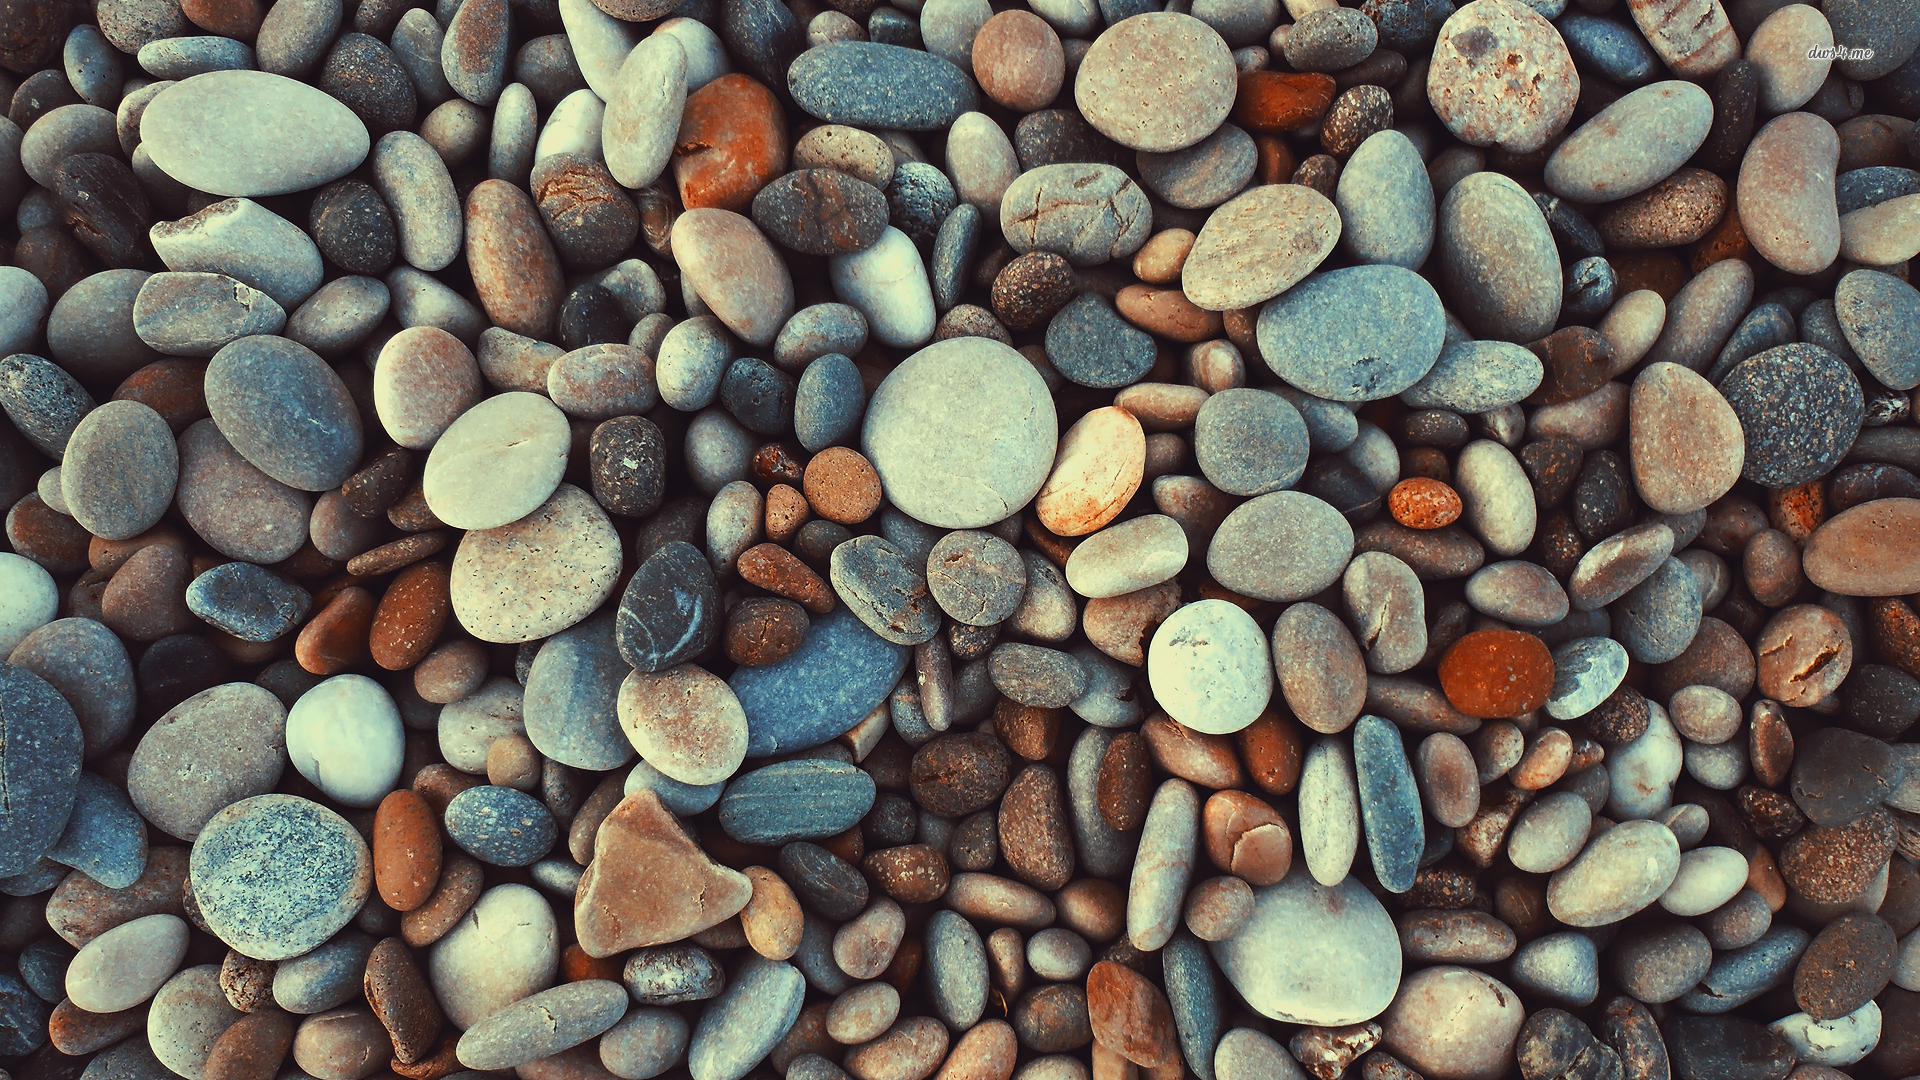 High Quality Image of Pebble : 1920x1080